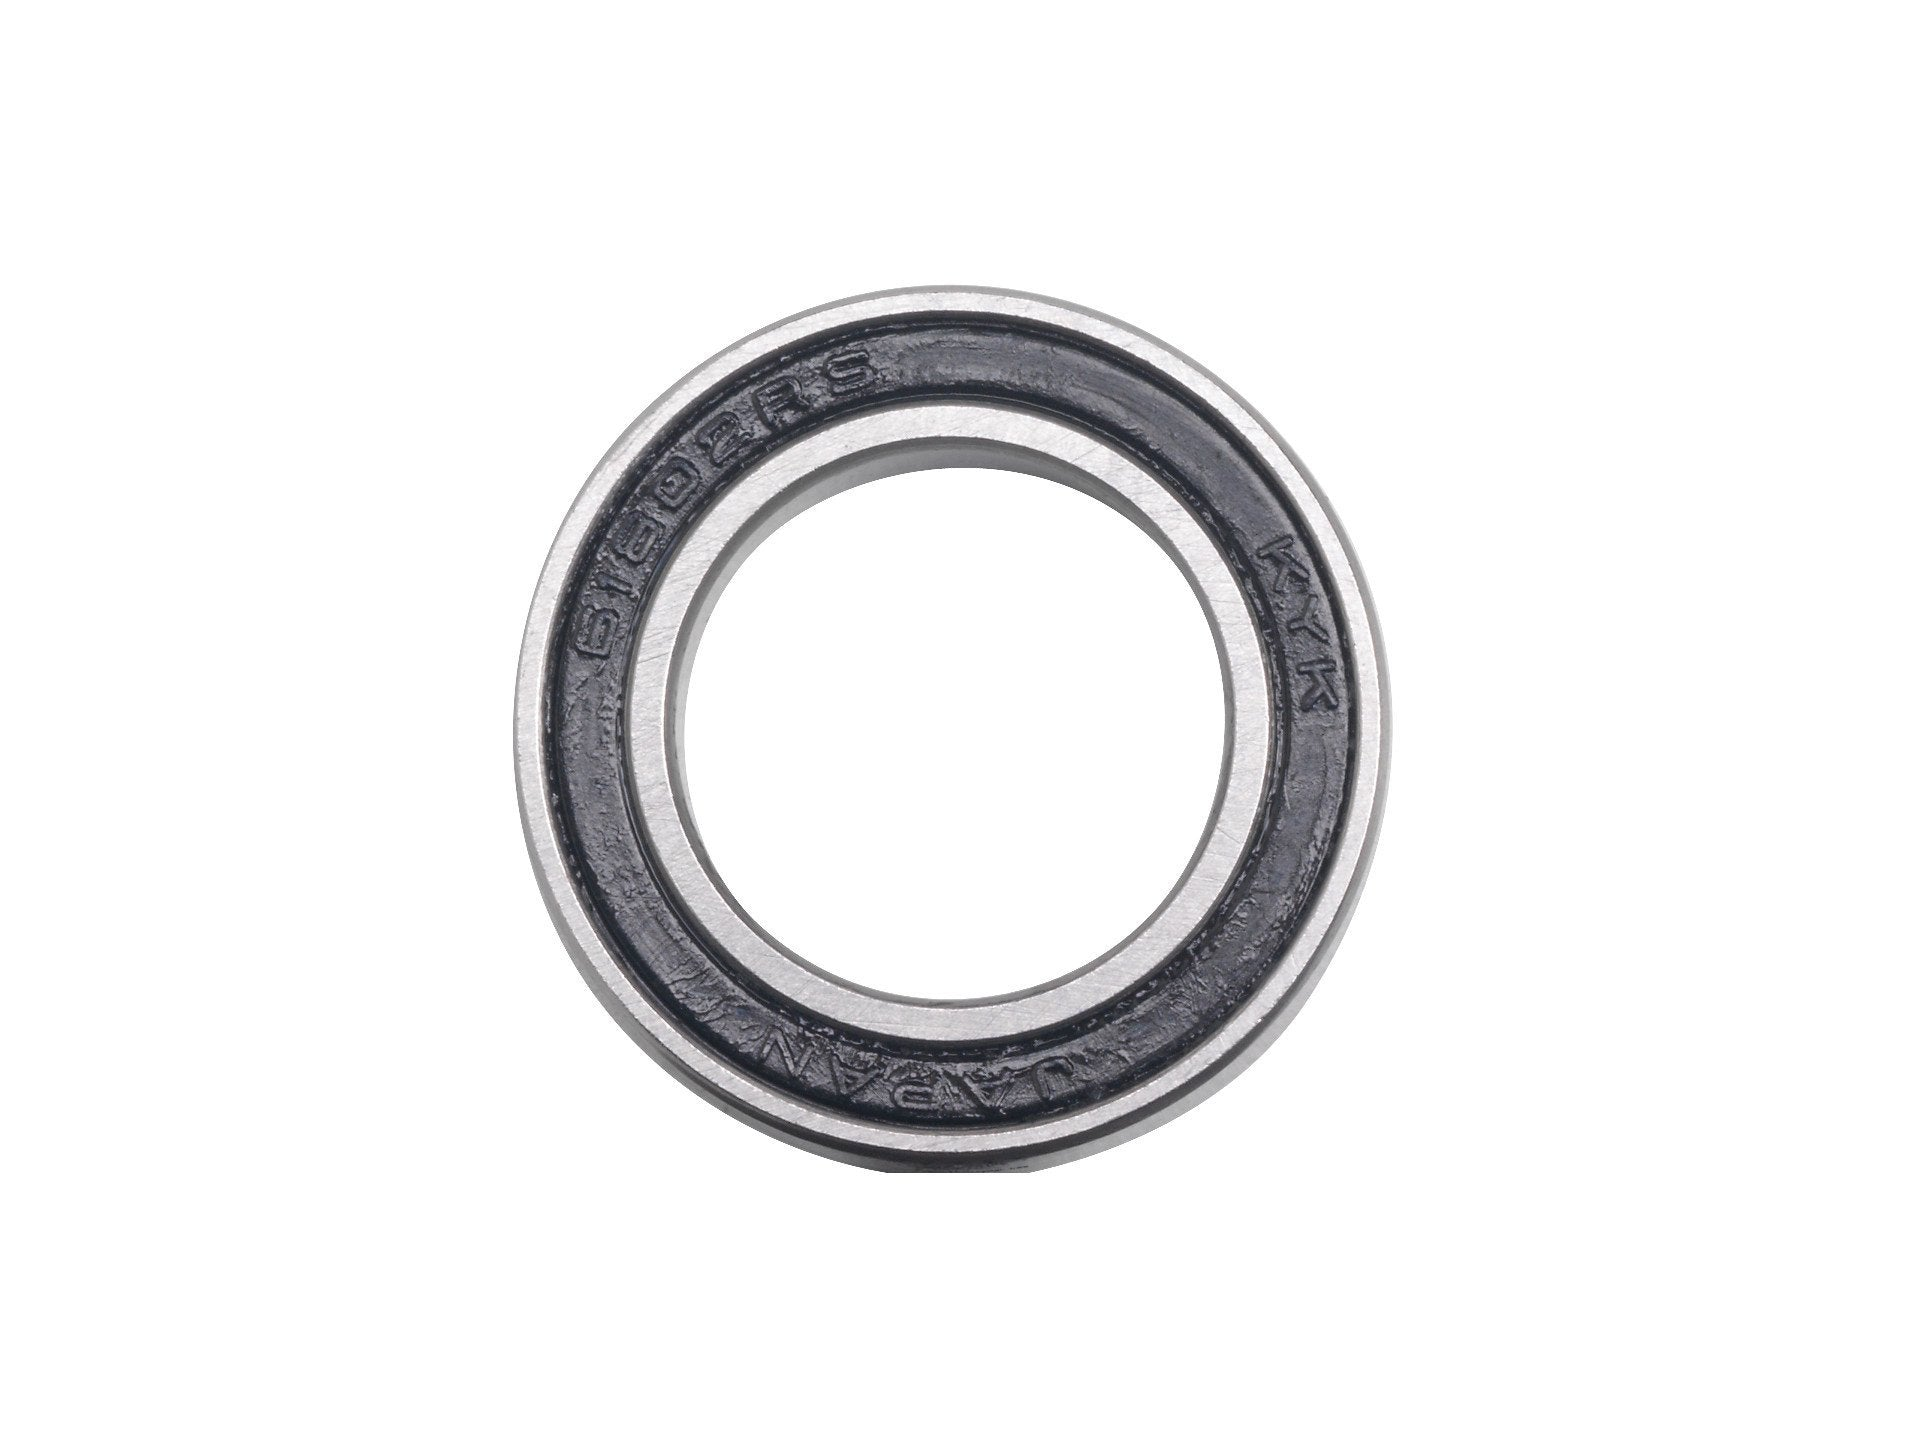 Bontrager 6802 LLB Replacement Hub Bearing 15X24X5